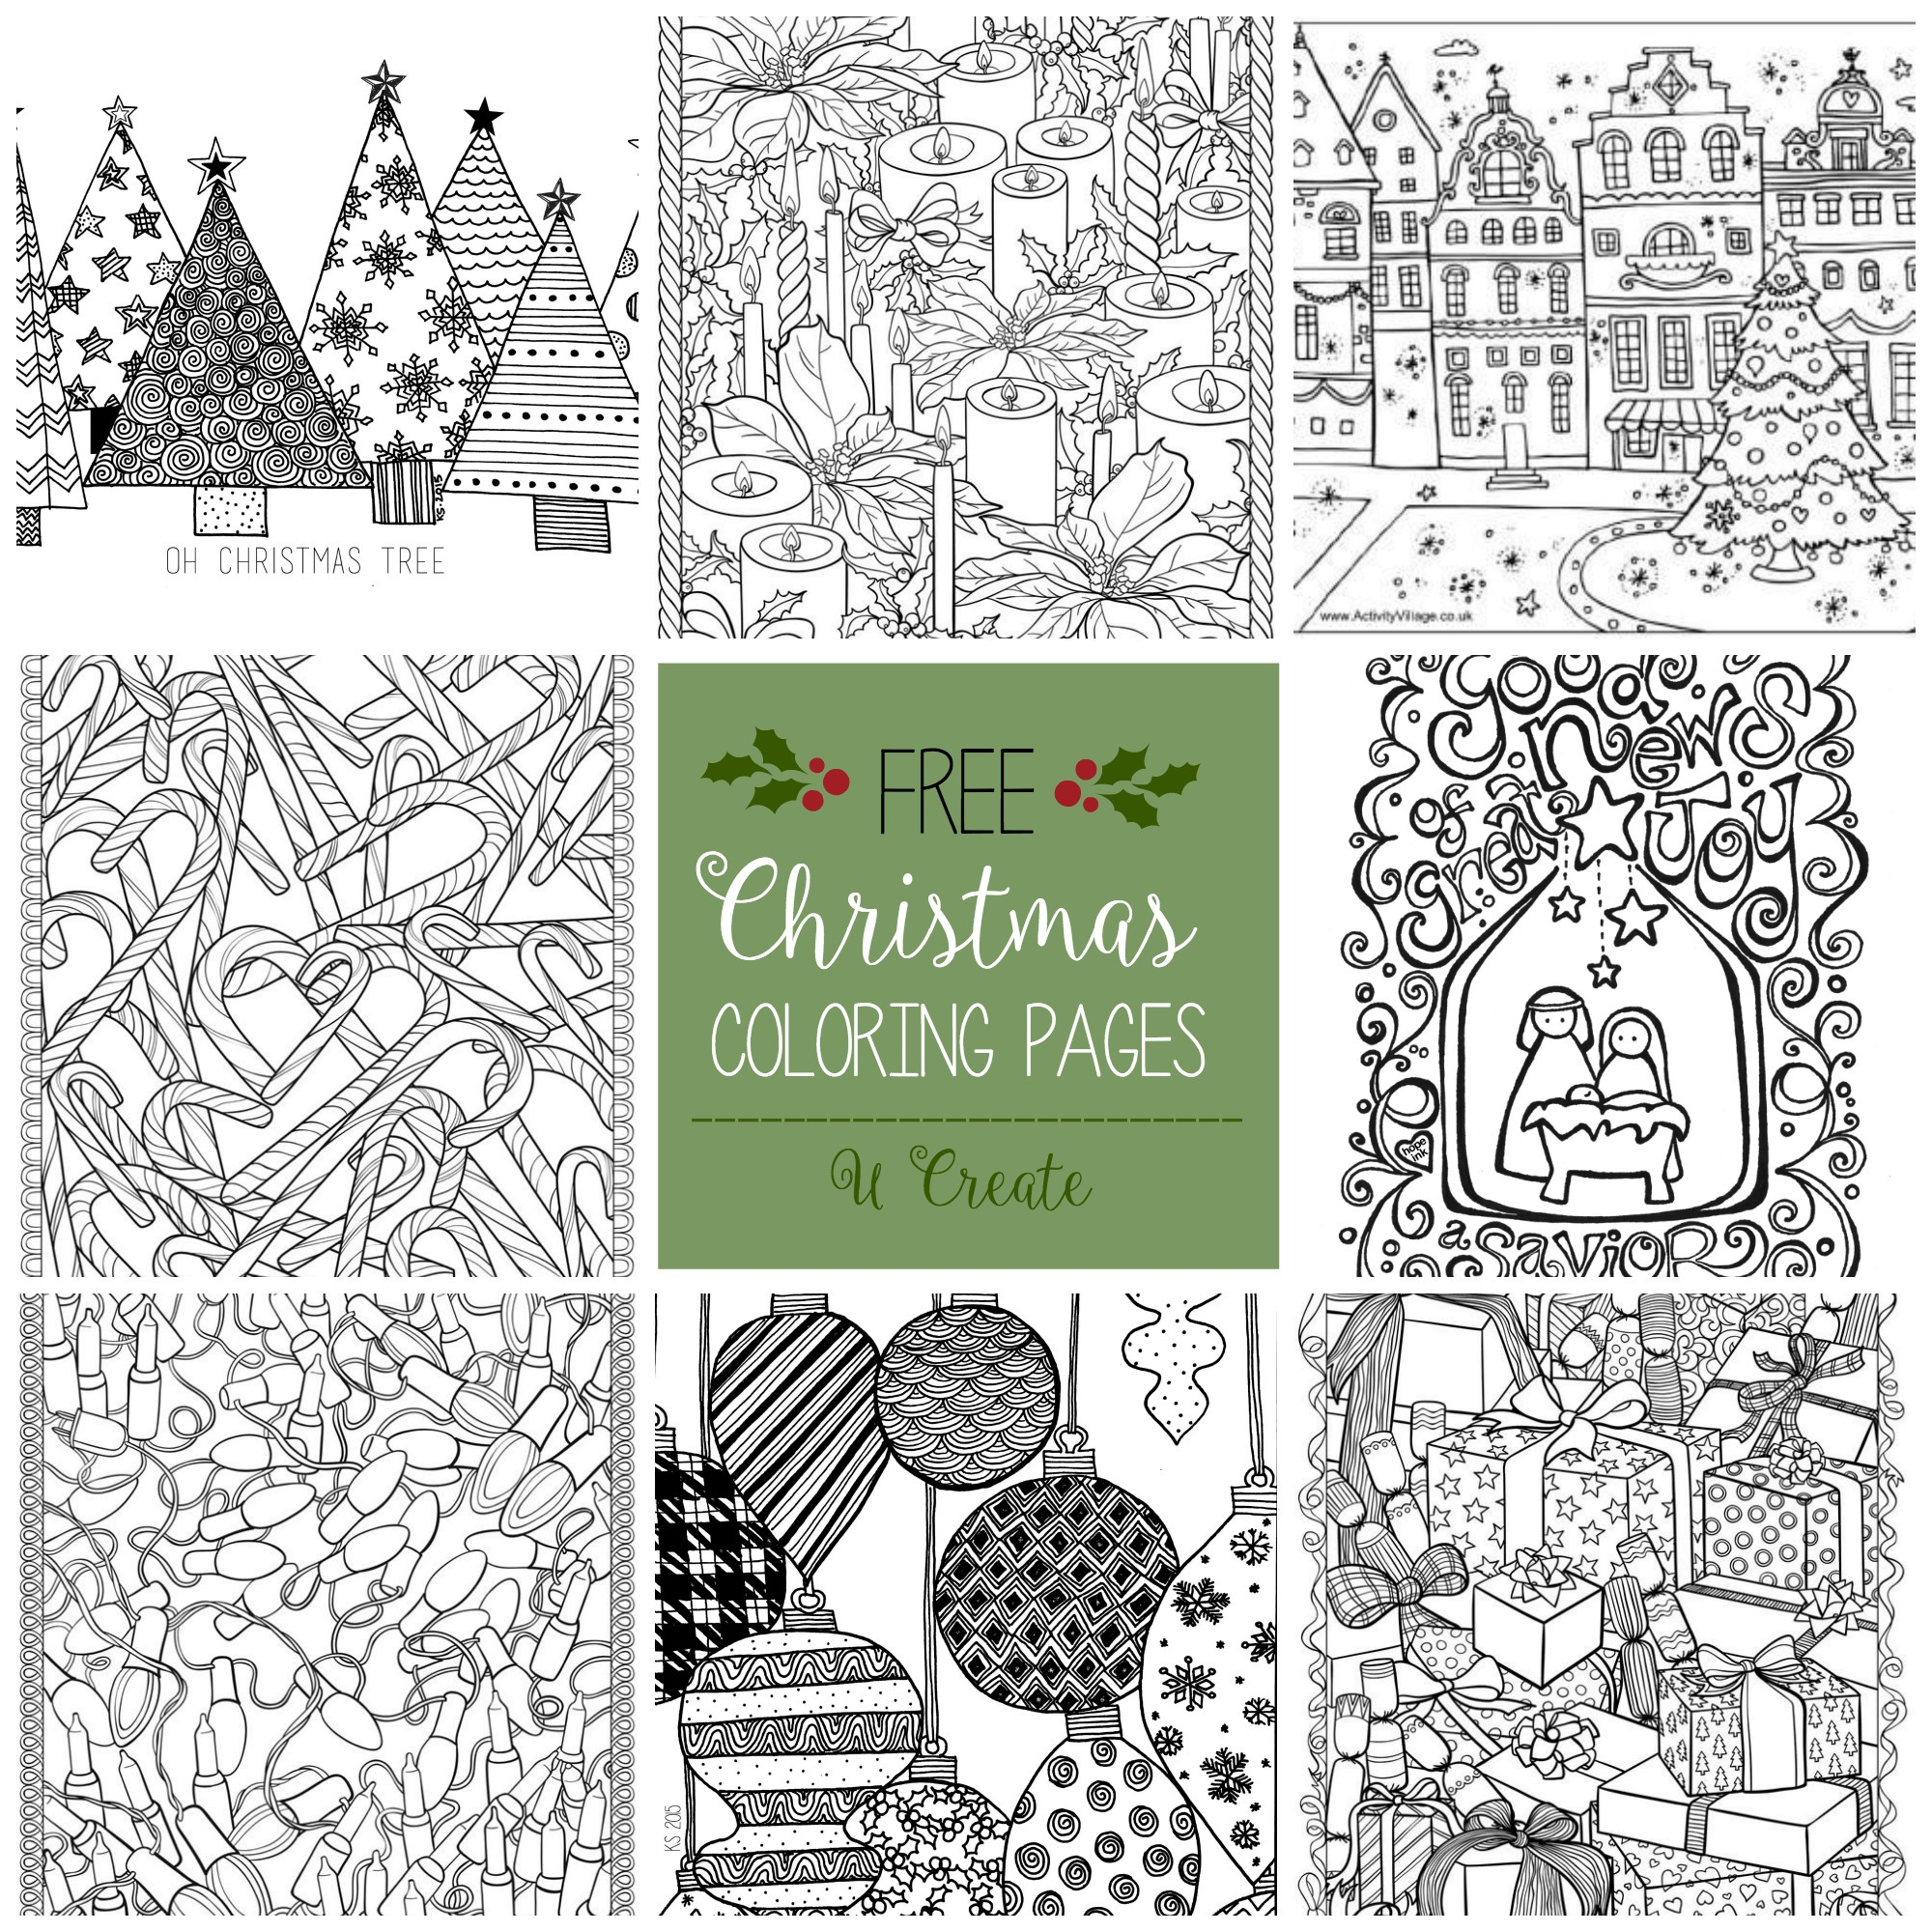 Christmas Coloring Pages Already Colored With Free Adult U Create